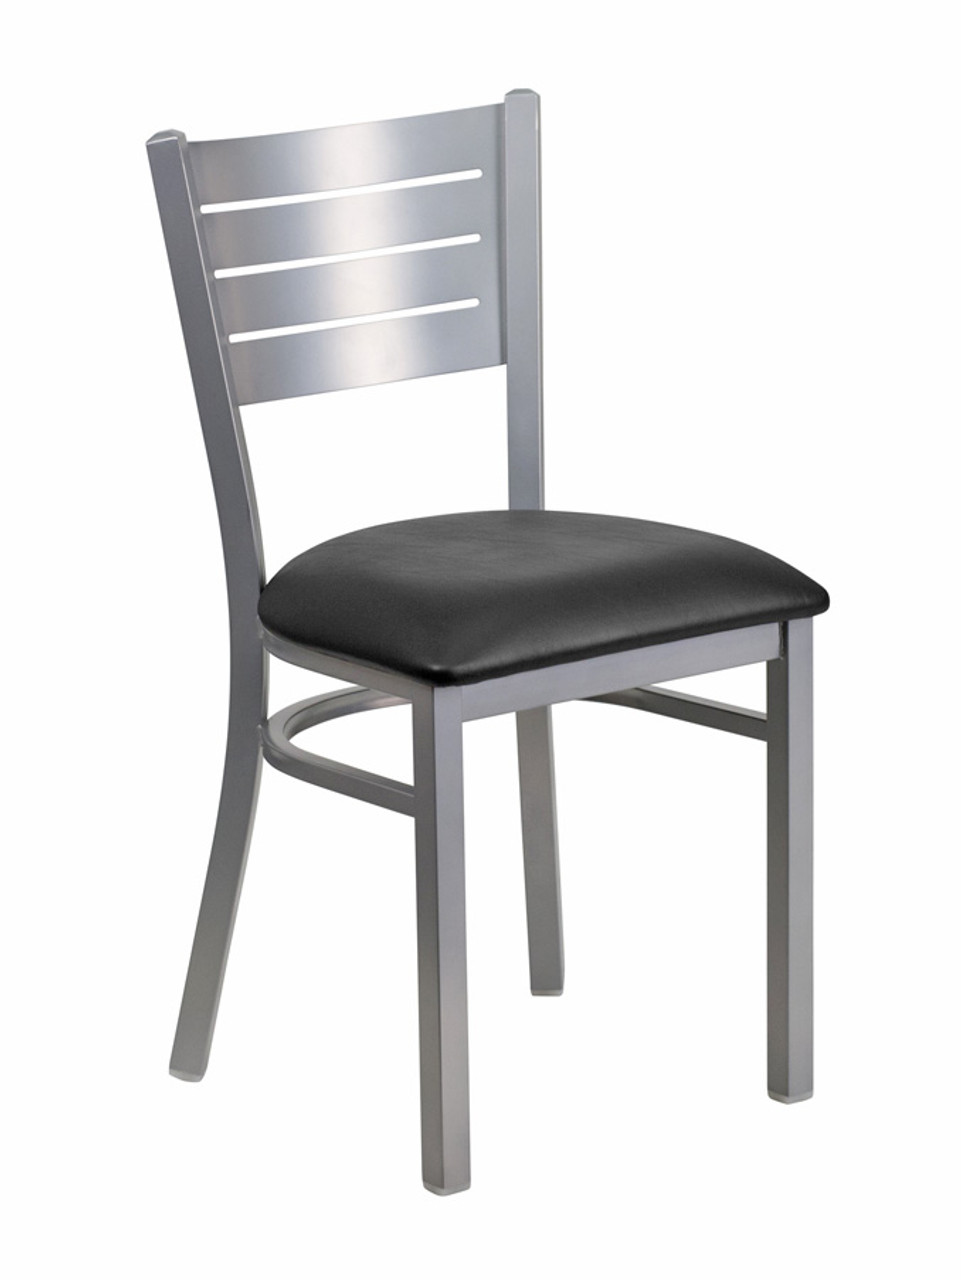 steel vinyl chair rustic wood chairs silver slat frame restaurant with commercial grade 800 637 5596